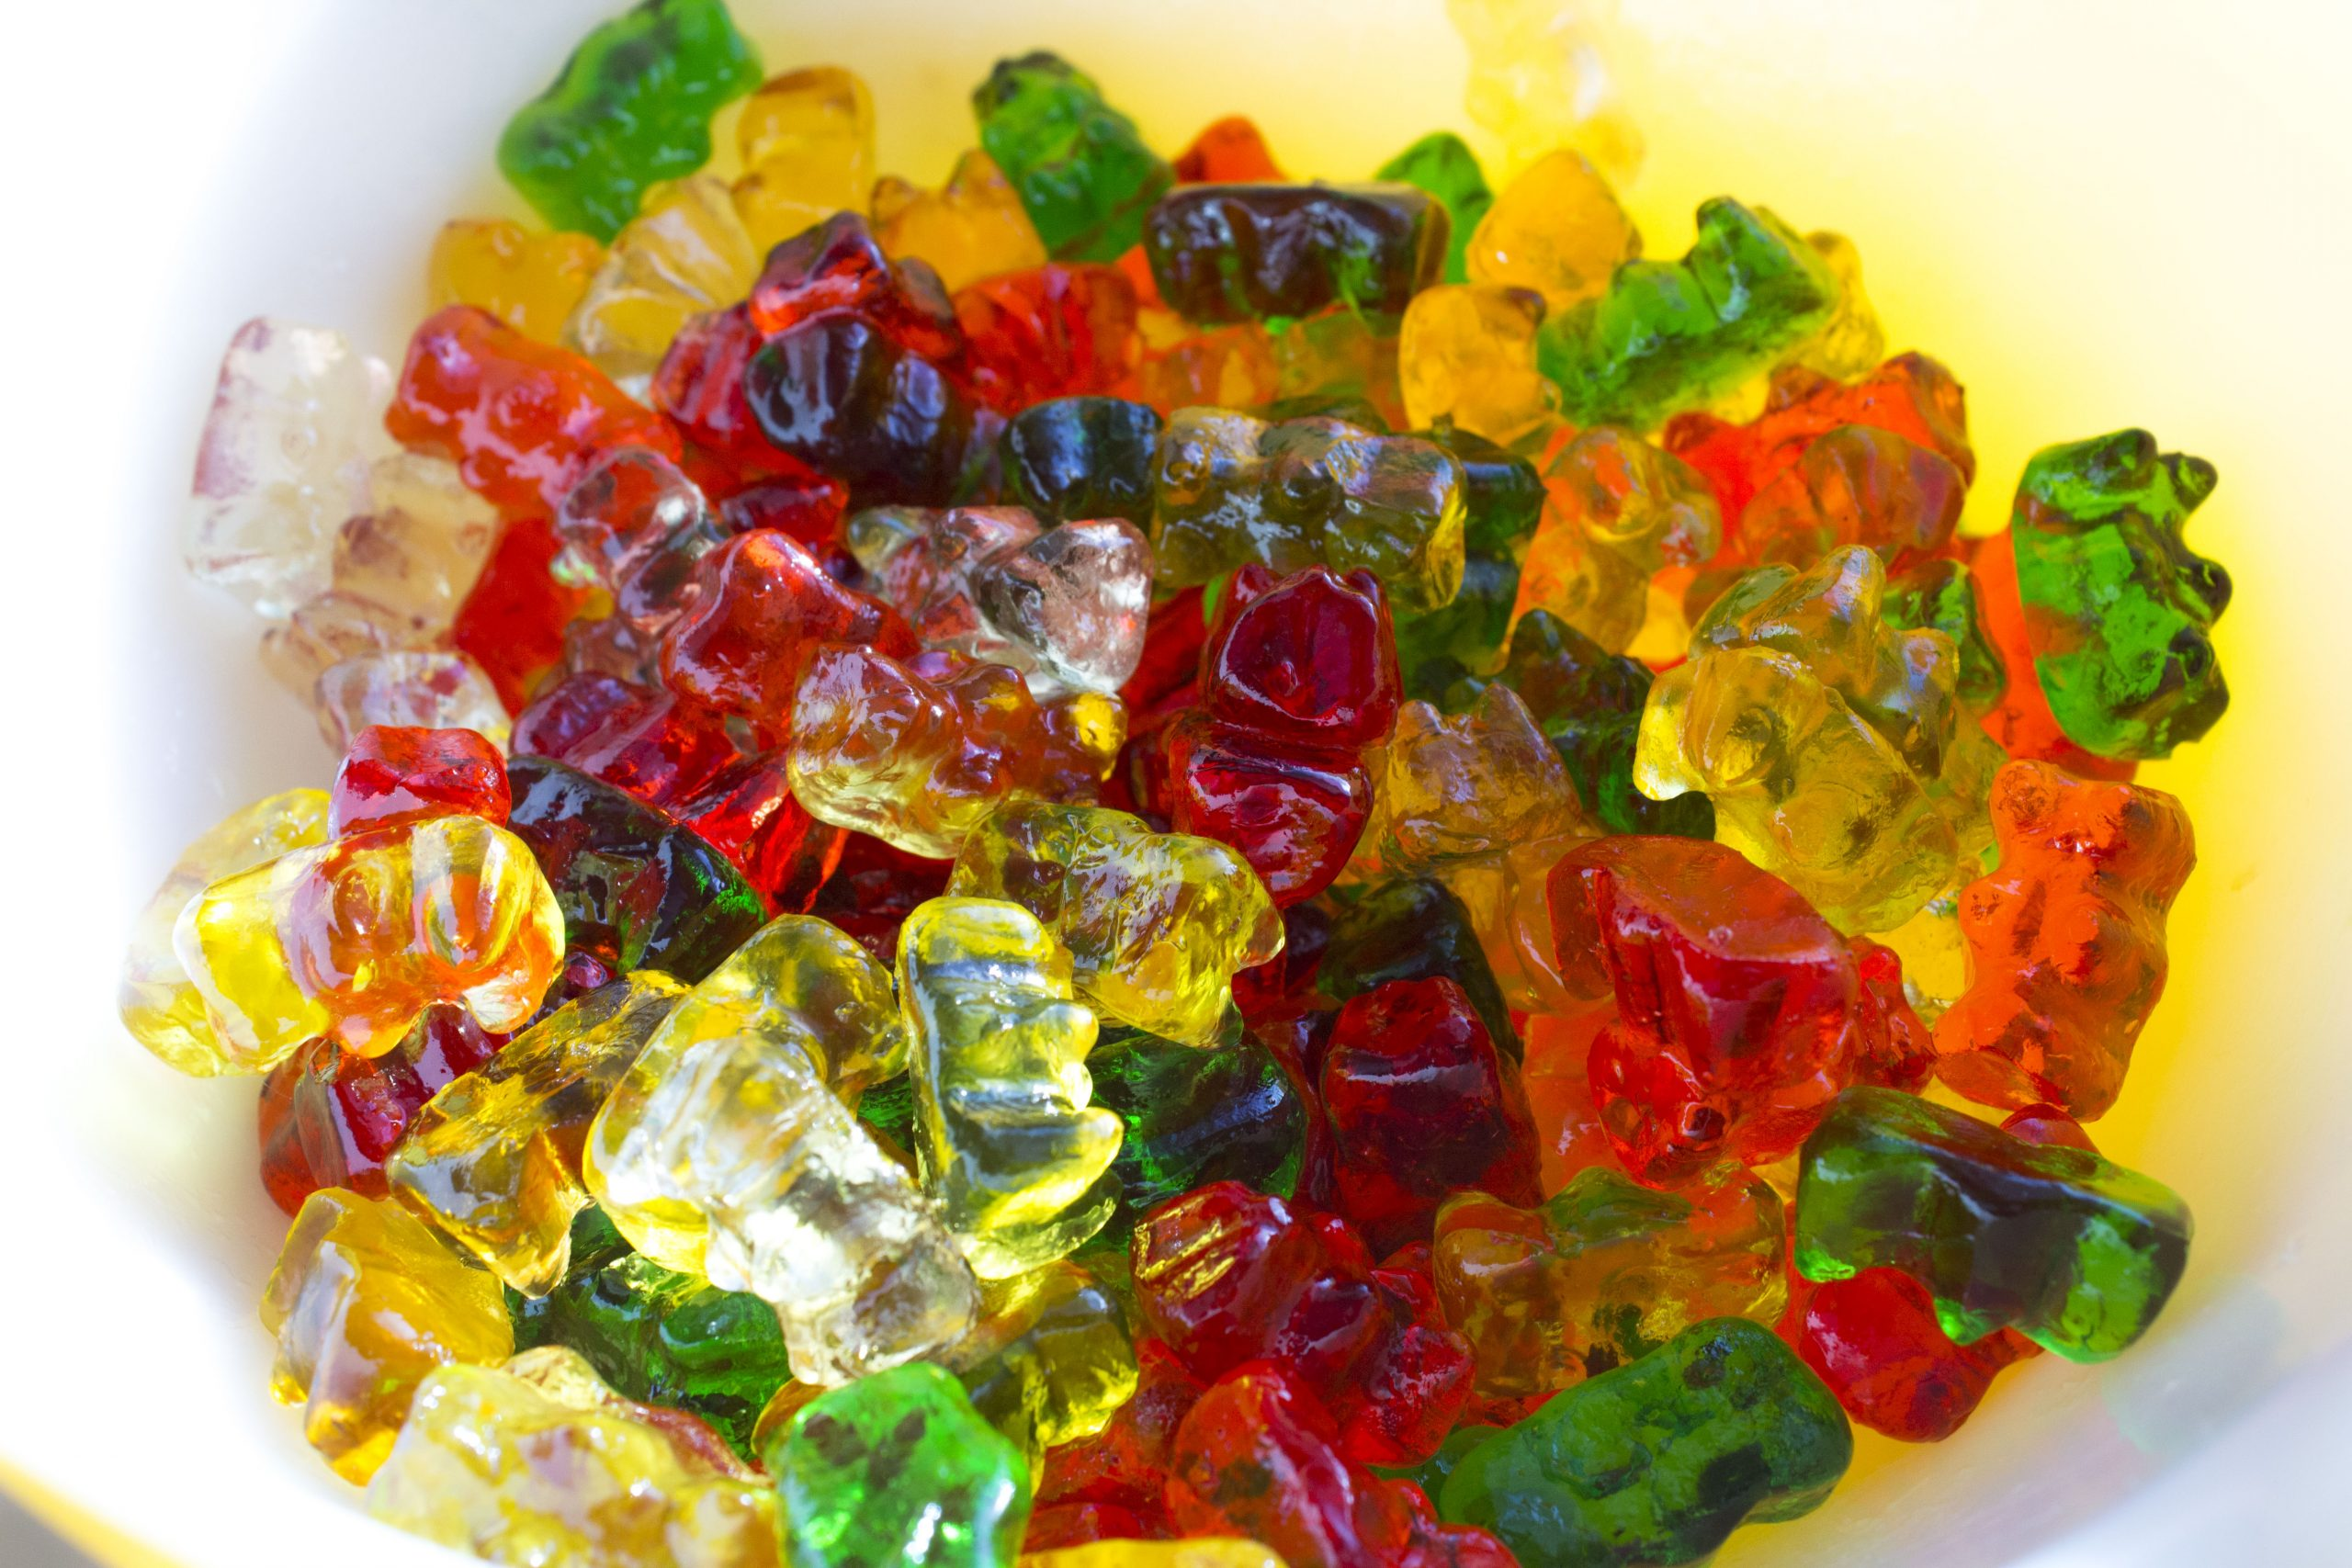 Quarantine Gummy Bears in Bowl